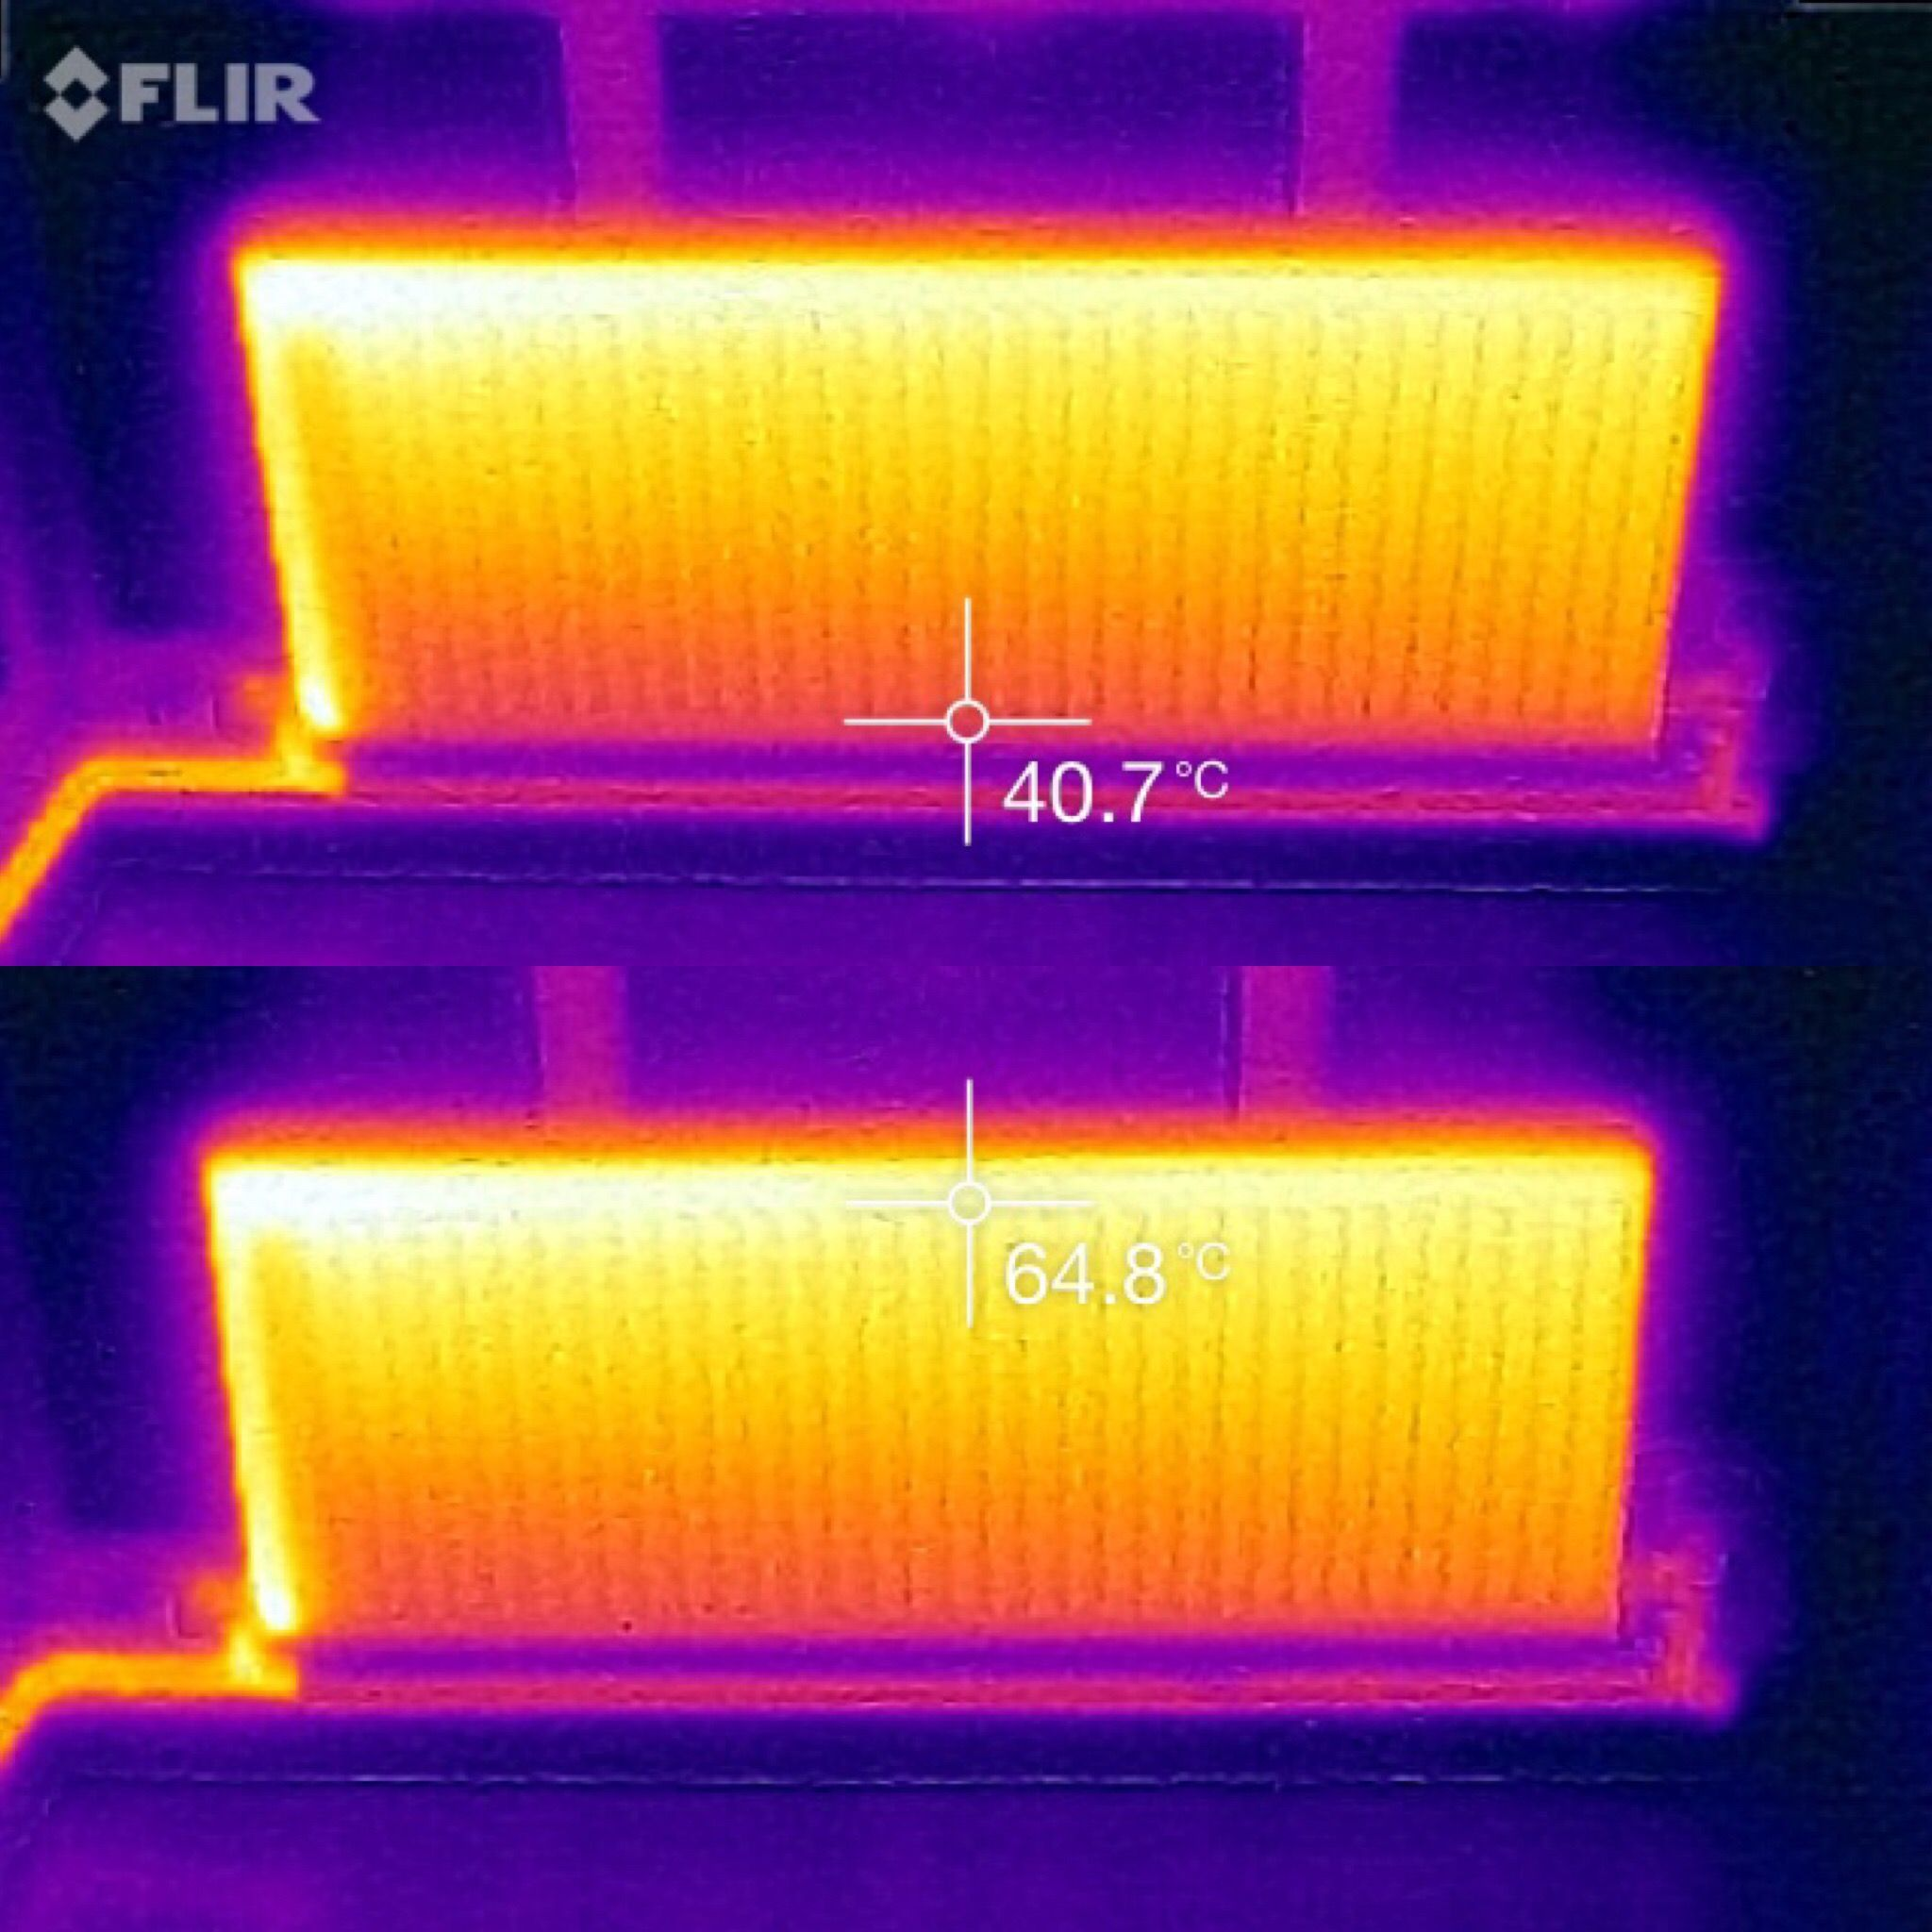 This Is The Thermal Image Of A Radiator In Need Of A Powerflush The Difference In Temperature Is Clear To See Due To Thermography Boiler Installation Thermal